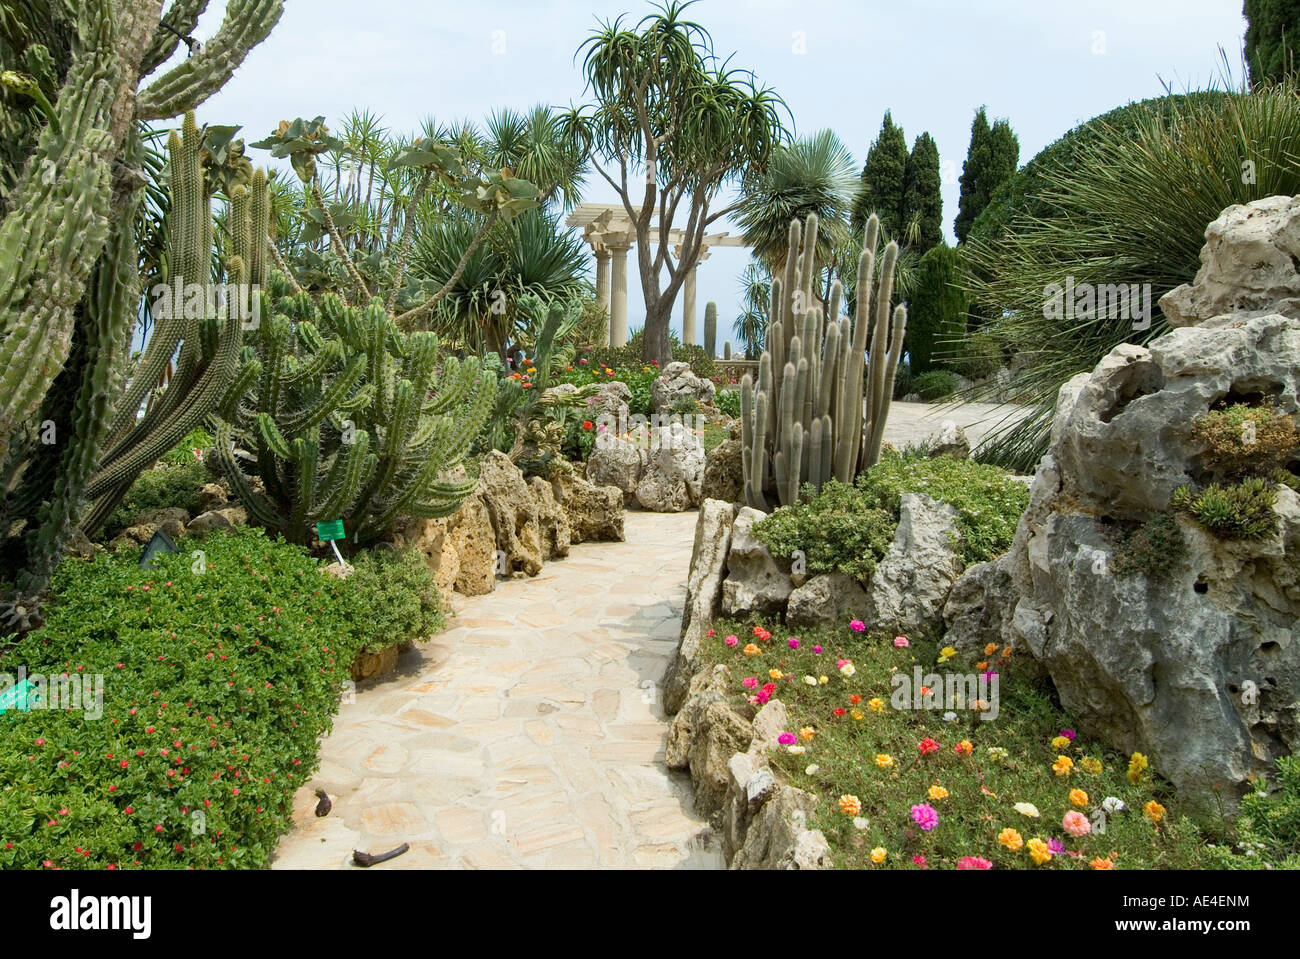 Jardin exotique moneghetti monaco europe stock photo for Jardin exotique monaco